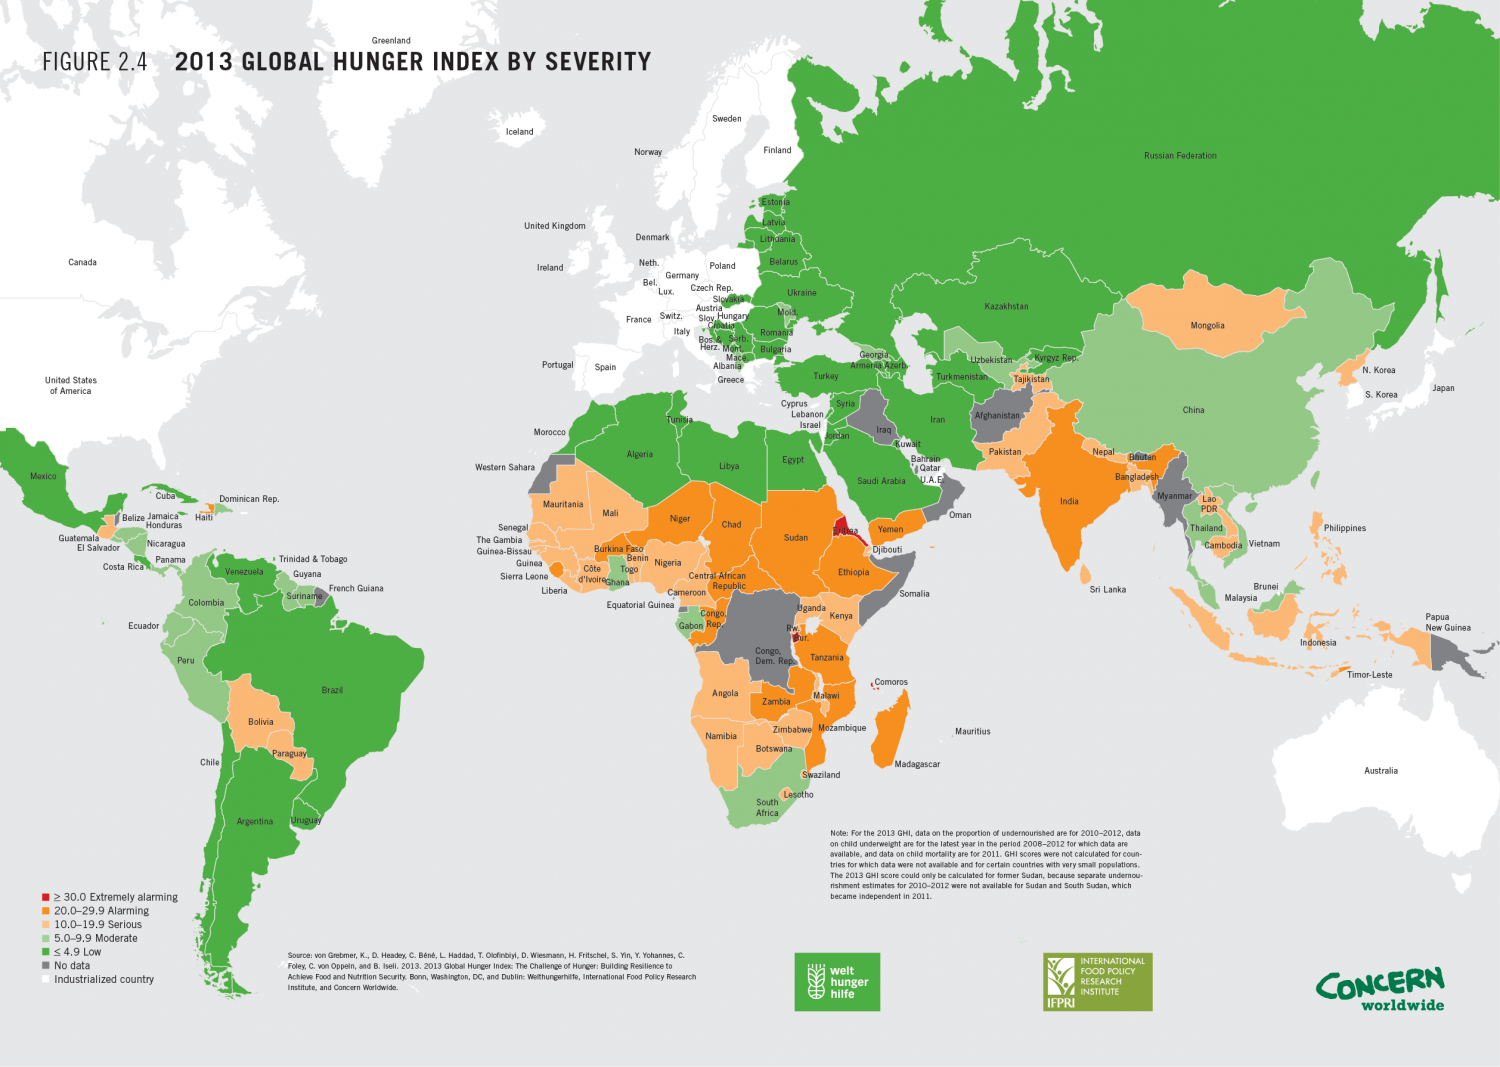 2013 Global Hunger Index by Severity Infographic